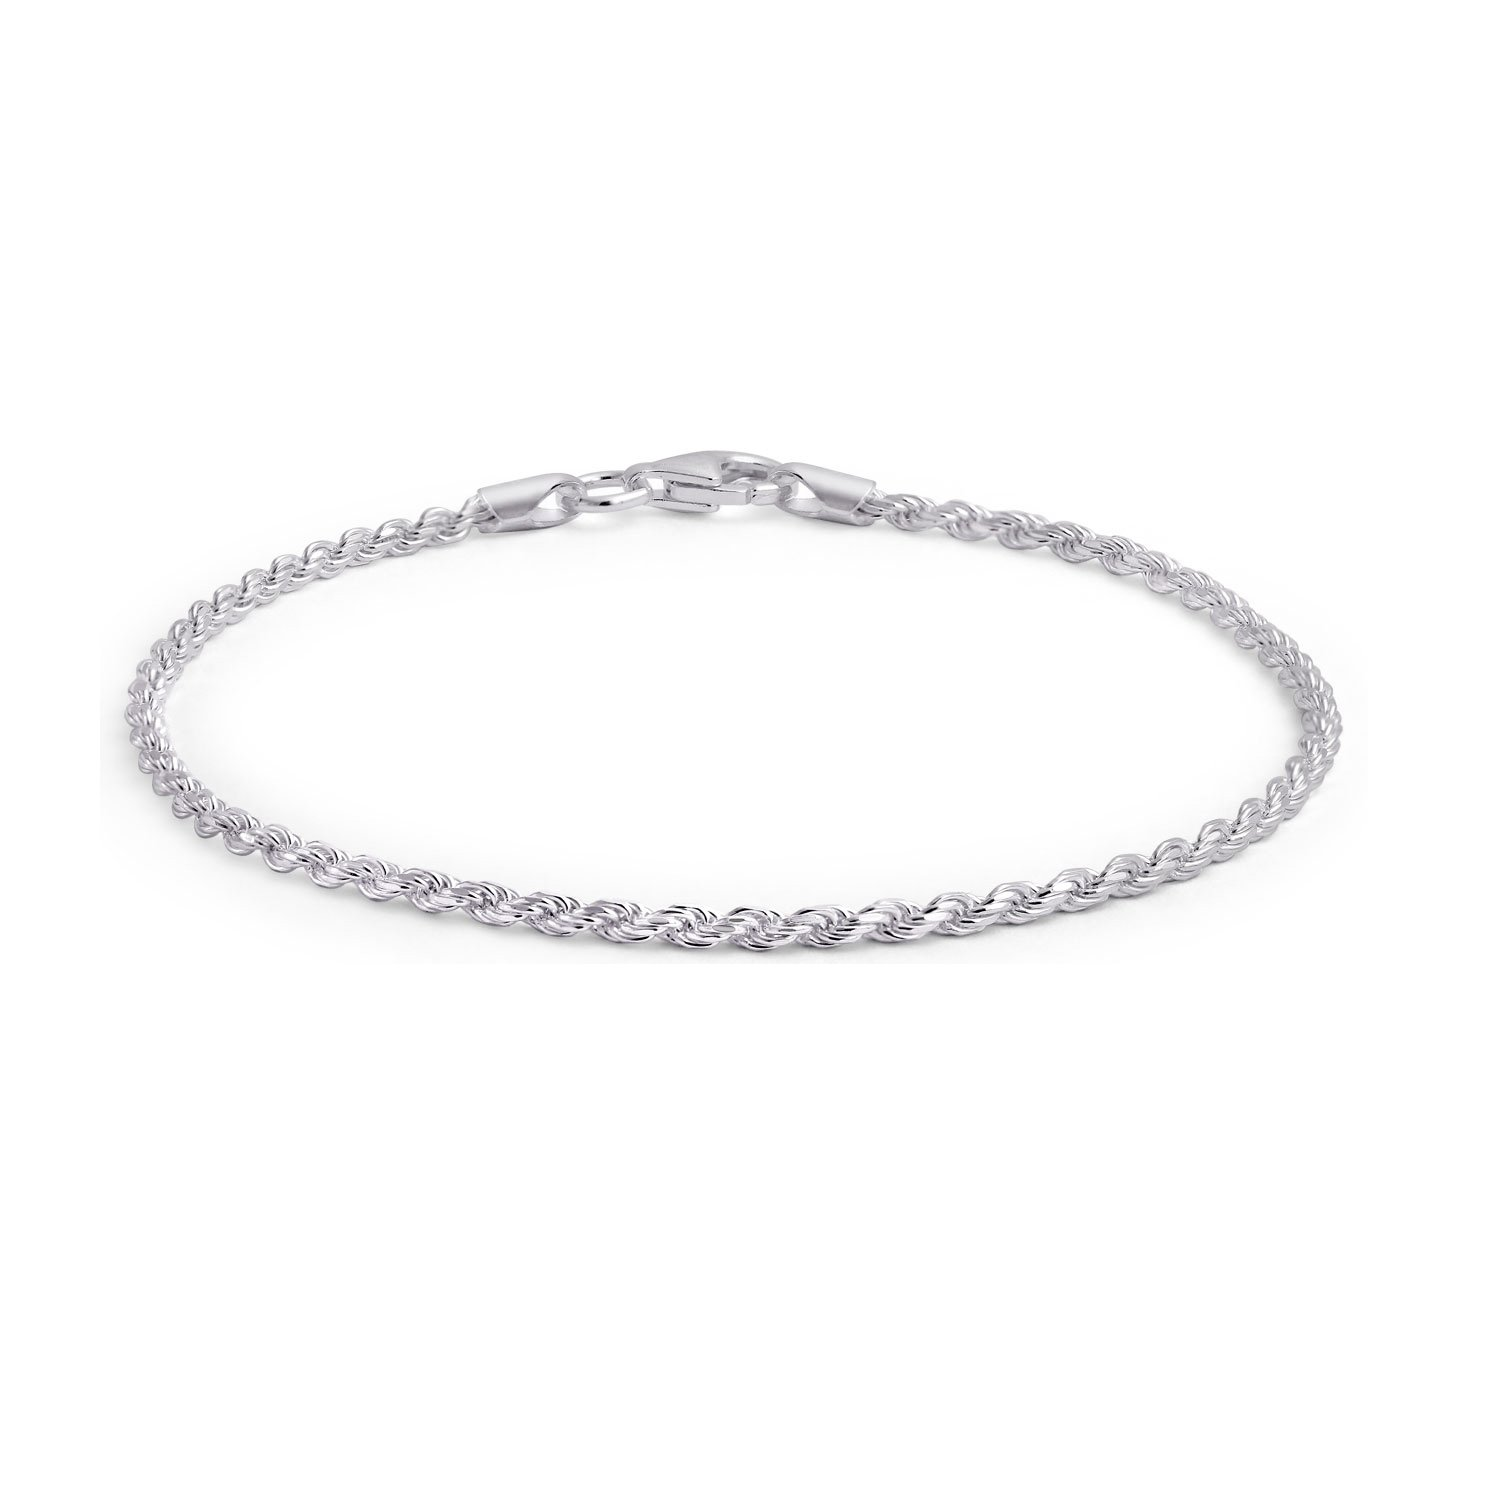 925 Sterling Silver Classic Twisted Rope Chain Italy Anklet Lobster Claw Clasp 40 Gauge Bling Jewelry SSTR-RP040-P-10